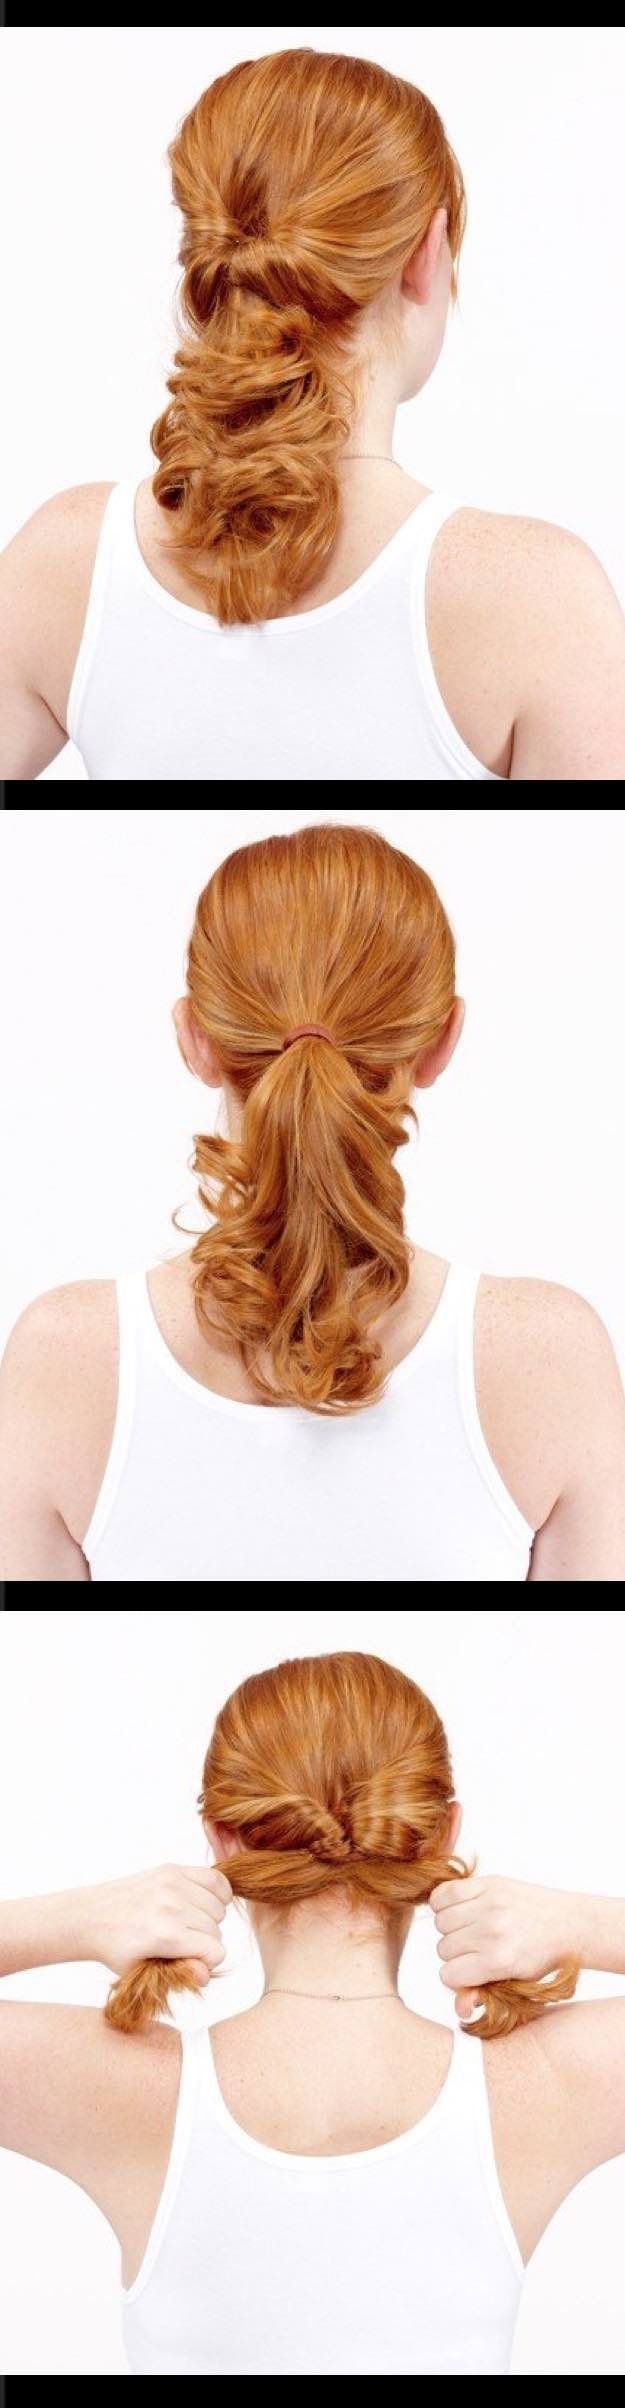 Easy hairstyles for work topsy tail quick and easy hairstyles